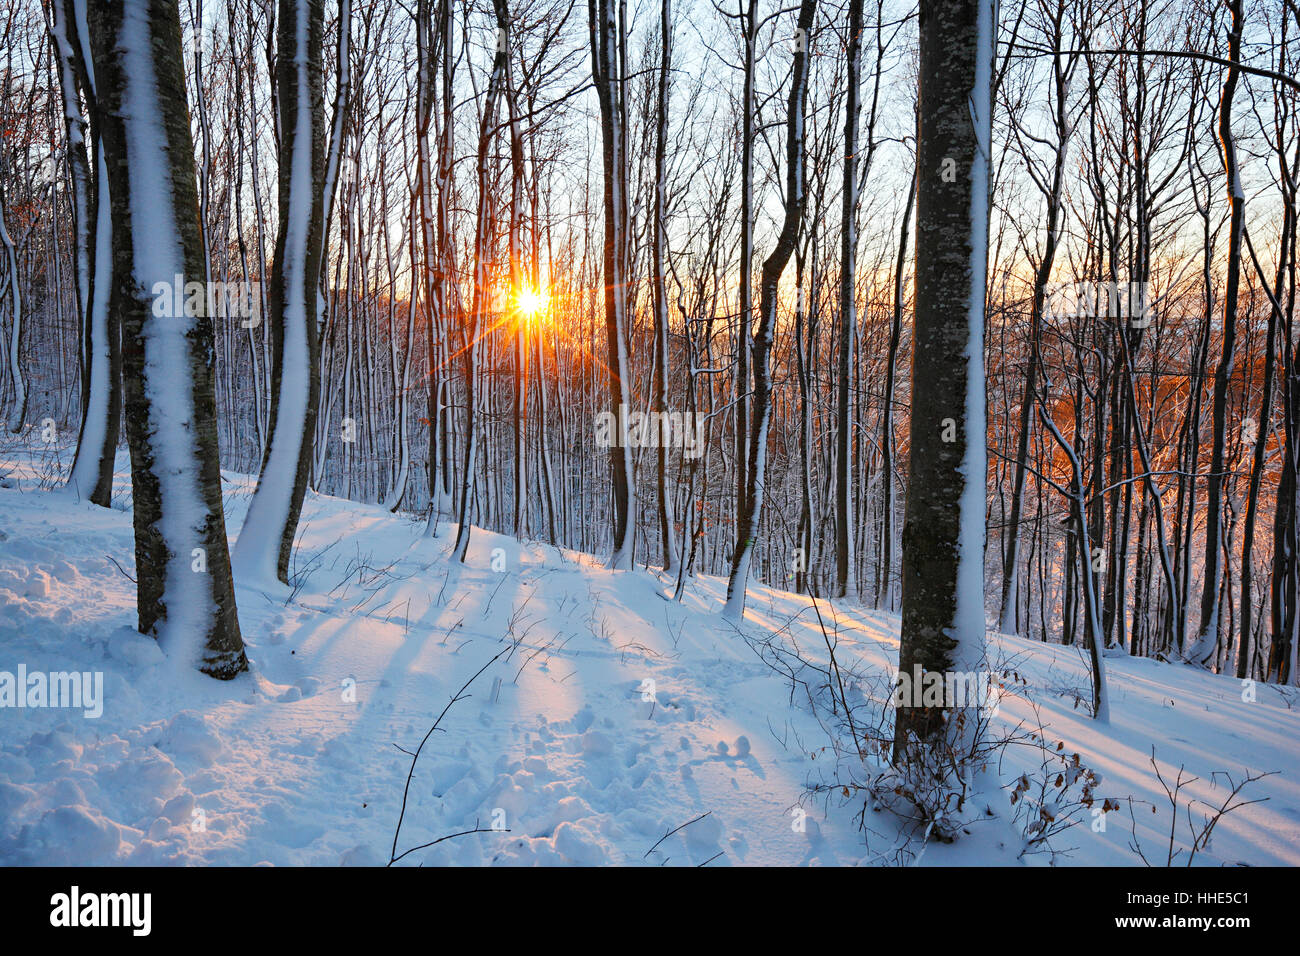 Sun in snow cowered forest - Stock Image